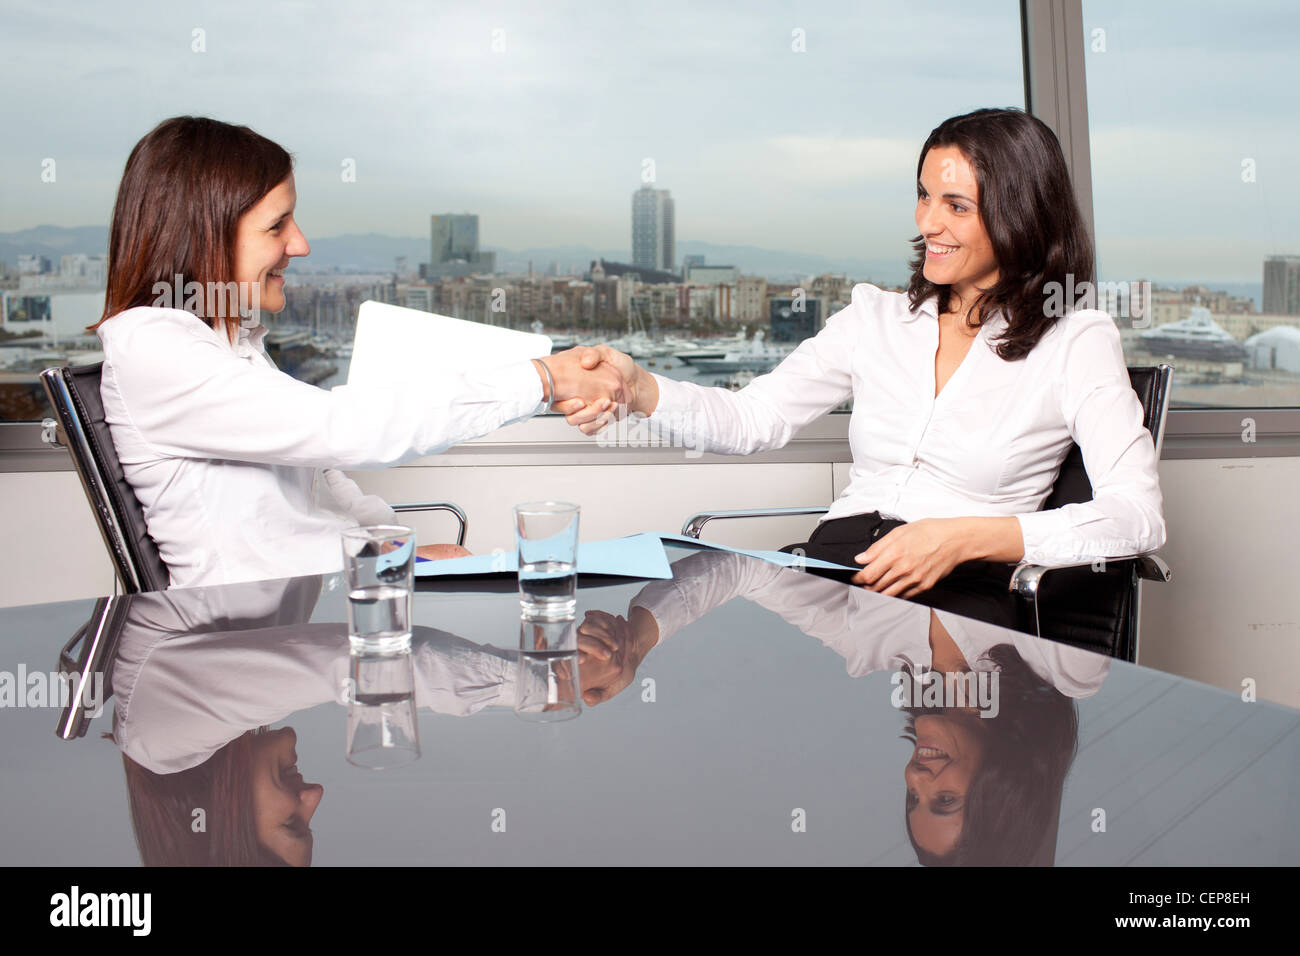 Female boss shake hands with successful candidate - Stock Image